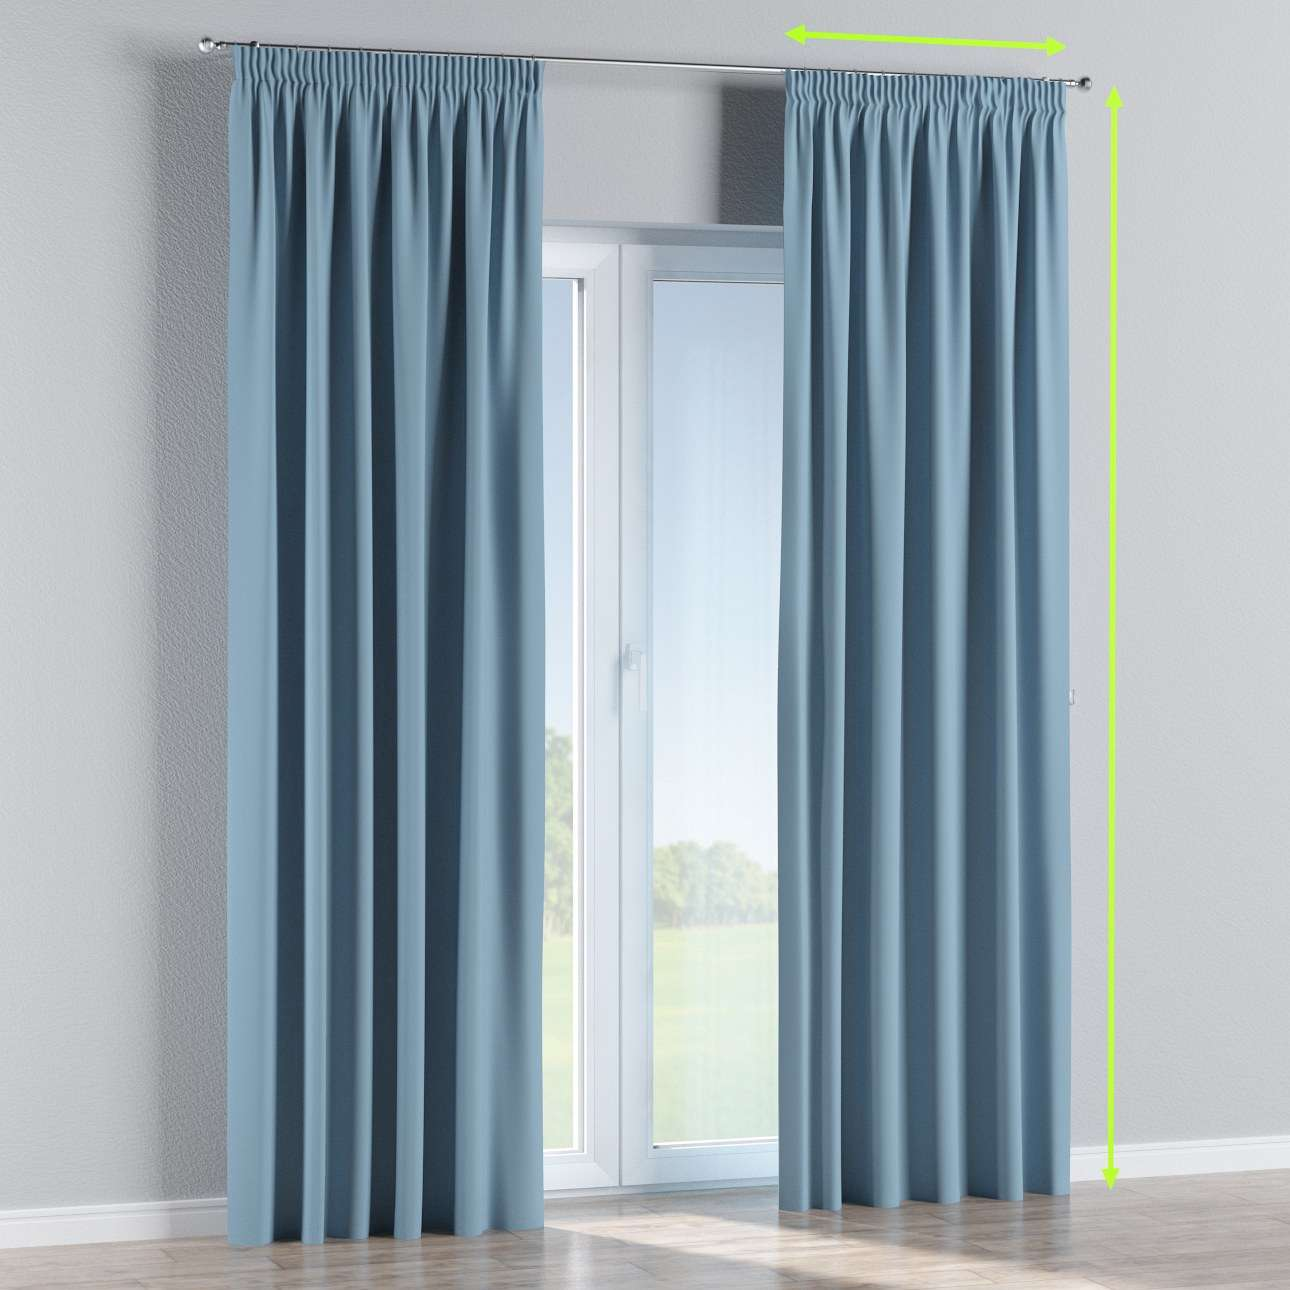 Blackout pencil pleat curtain in collection Blackout, fabric: 269-08